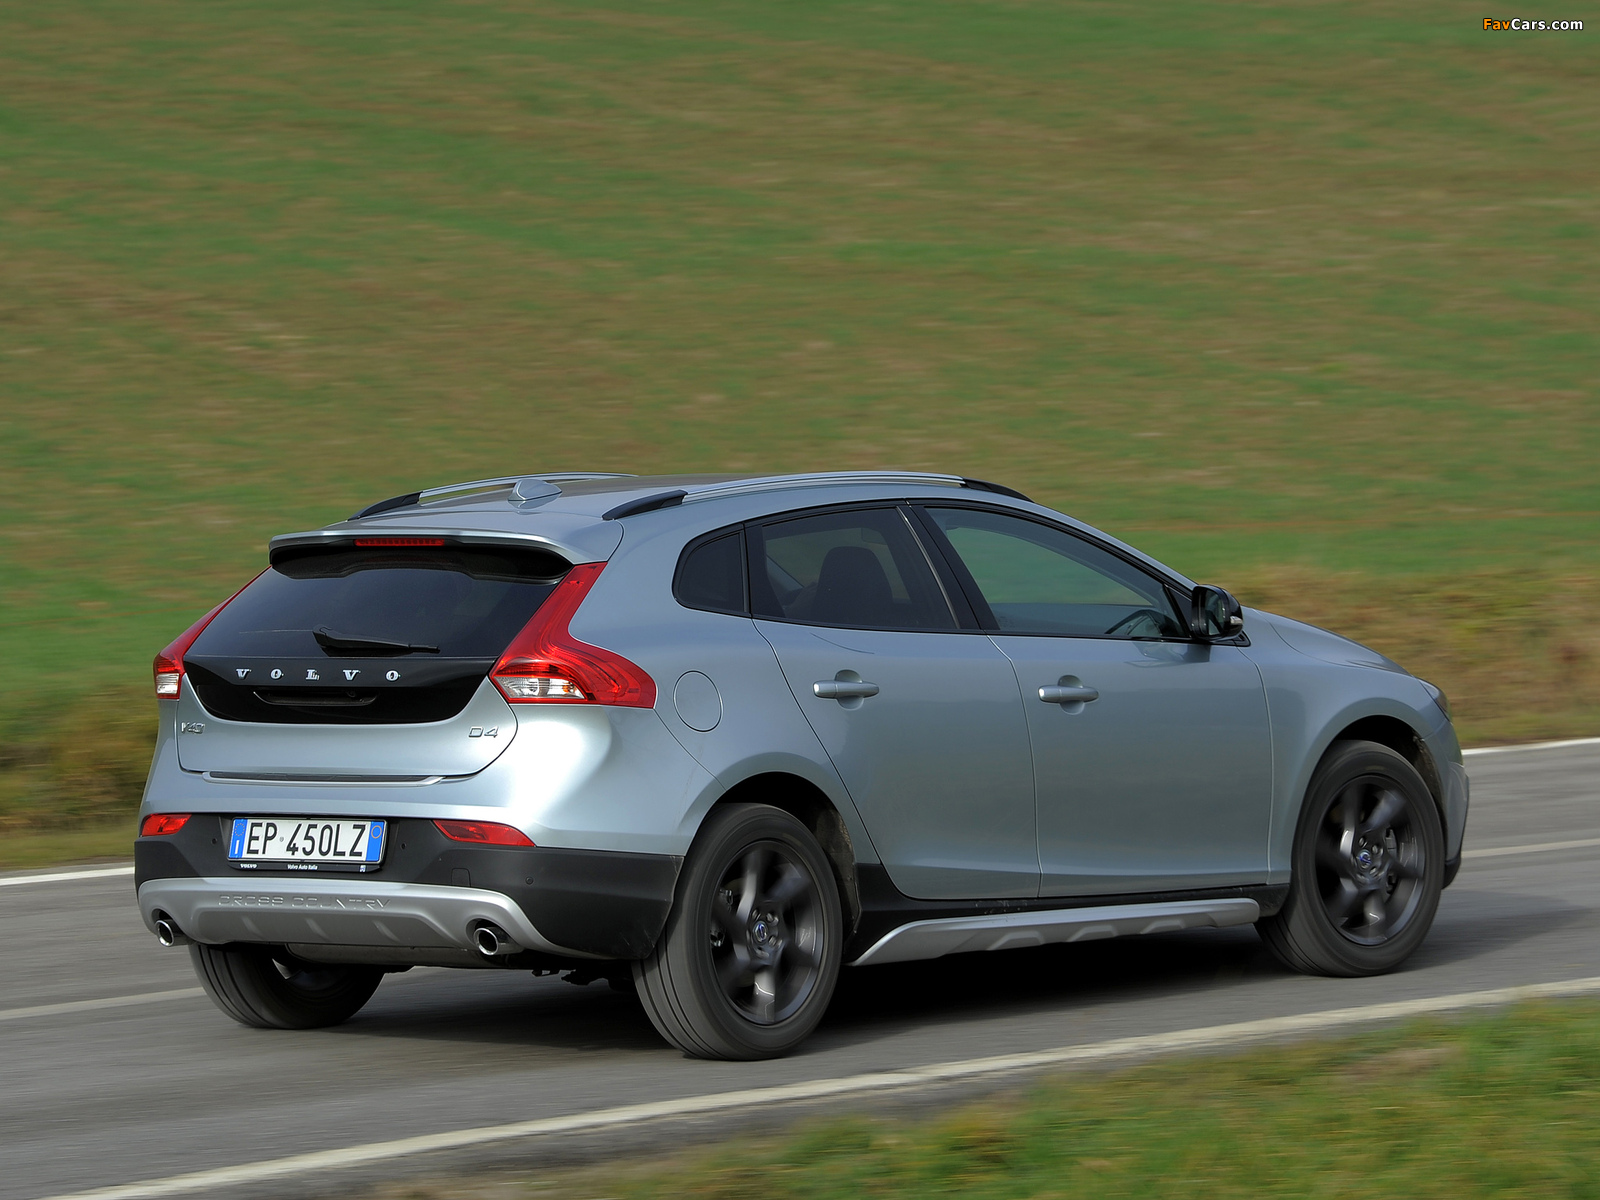 volvo v40 cross country d4 2012 photos 1600x1200. Black Bedroom Furniture Sets. Home Design Ideas